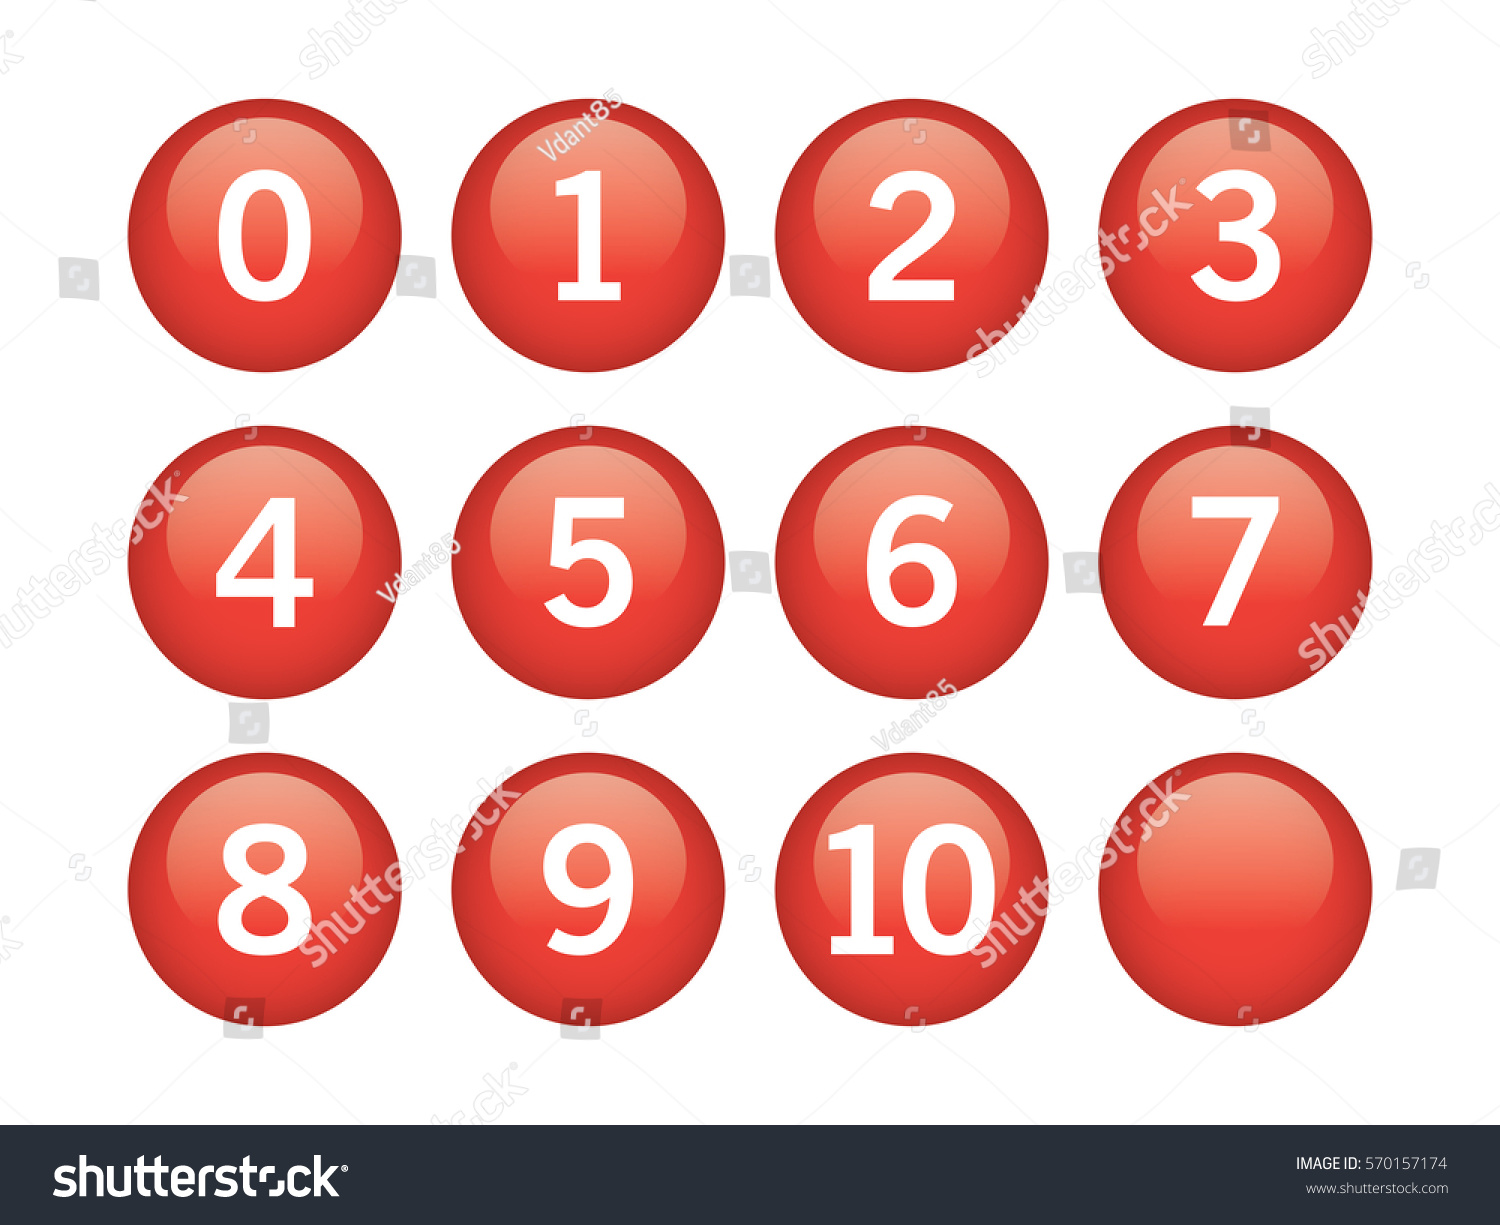 Red circle numbers inside on white stock vector 570157174 red circle with numbers inside on white background buycottarizona Image collections